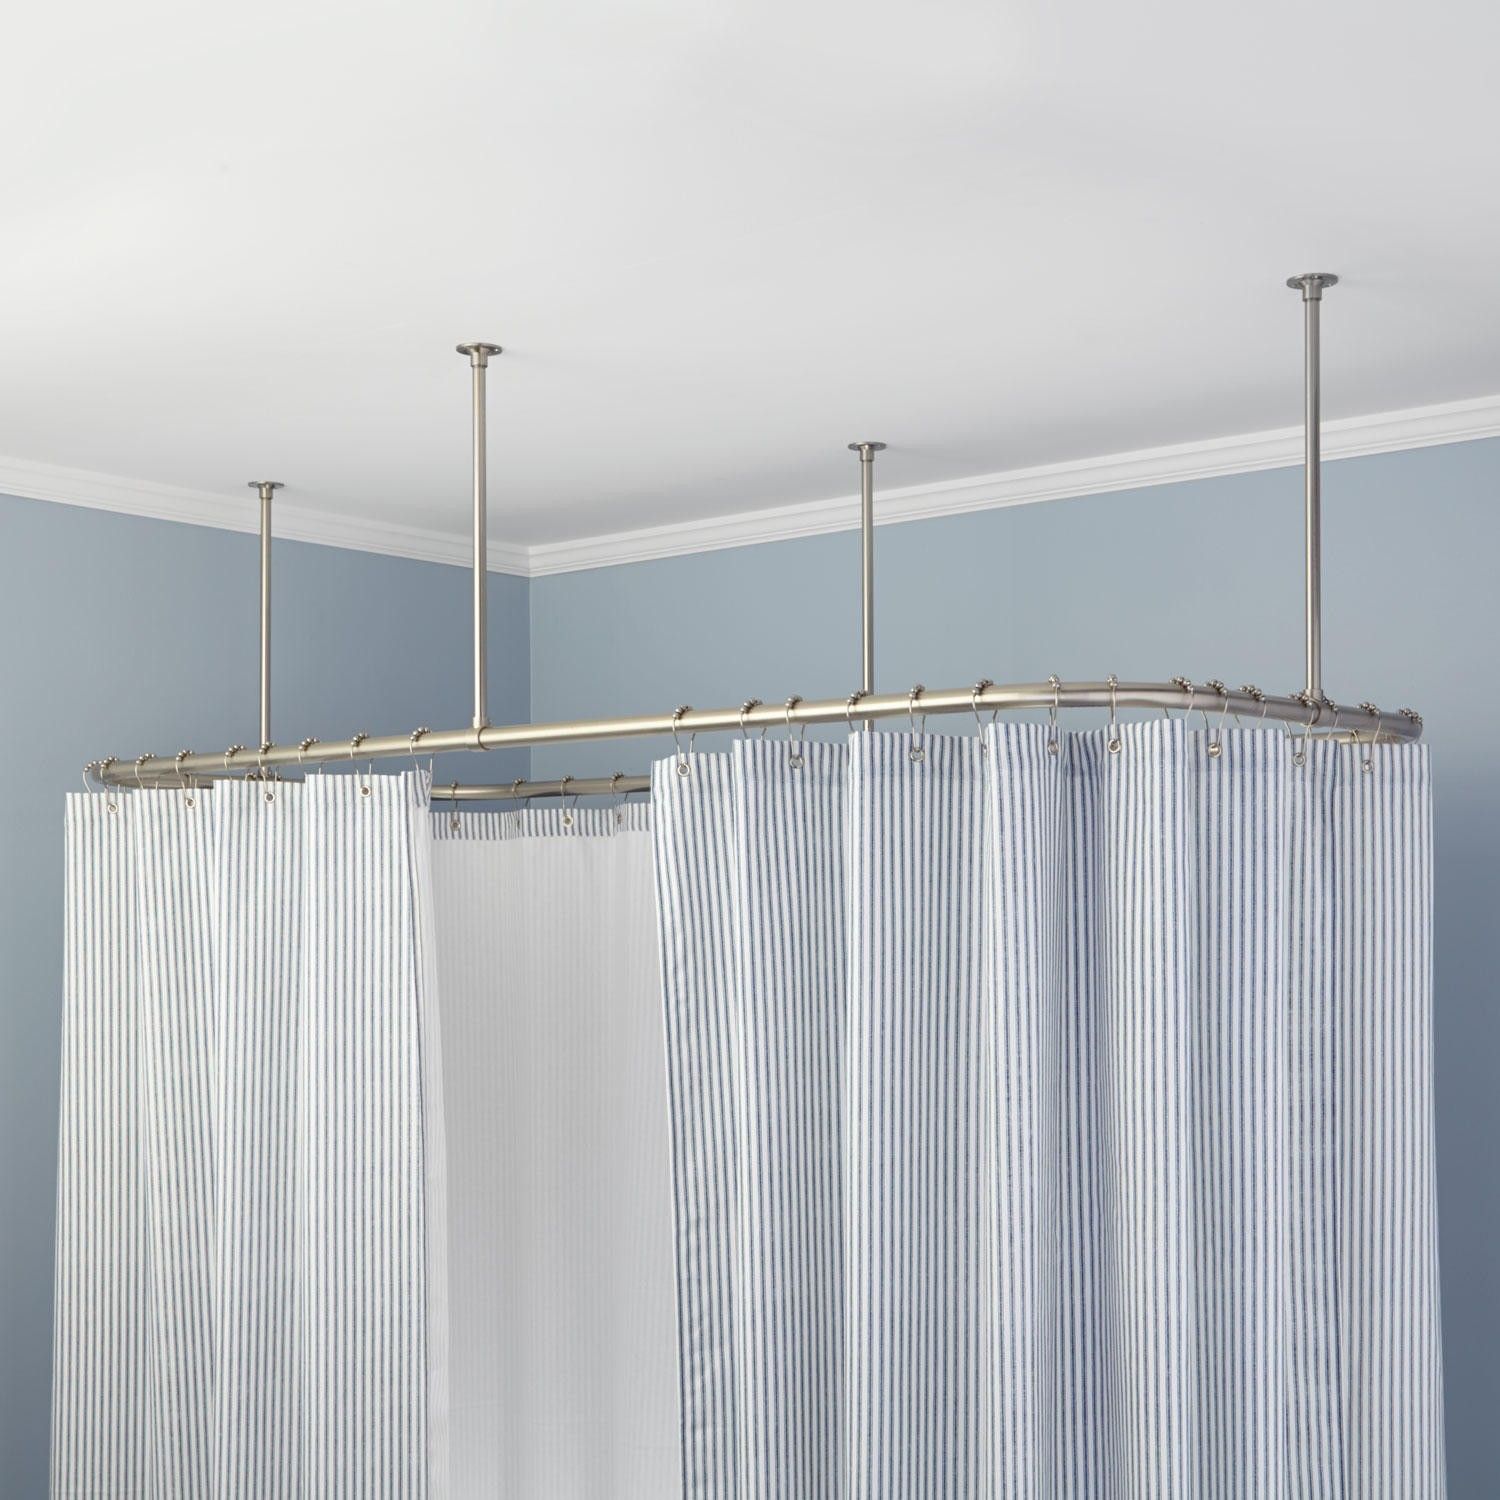 Curtains Strong And Easy To Use Ceiling Mount Curtain Track with regard to dimensions 1500 X 1500